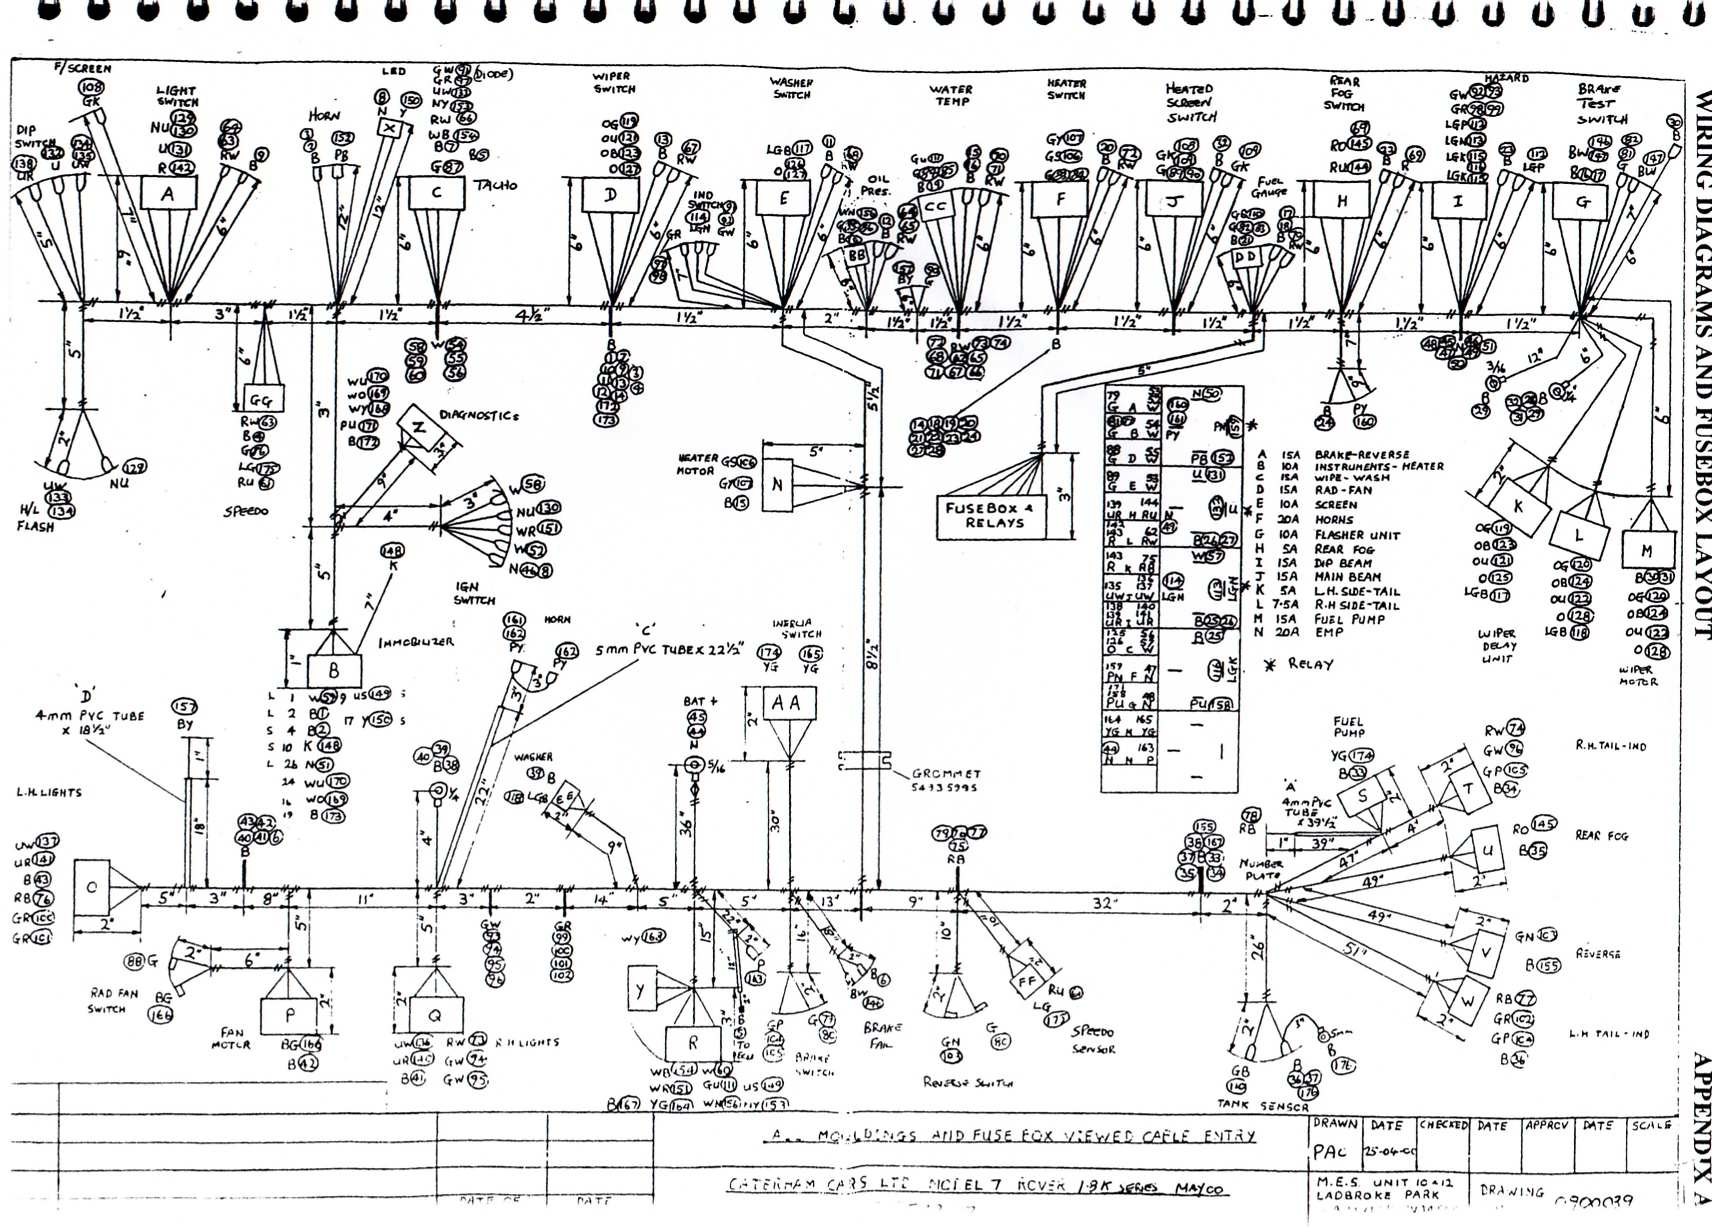 Car loom wiring diagram May 2000 100 [ e46 headlight wiring diagram ] diy guide ccfl angel eyes bmw e46 wiring diagram download at honlapkeszites.co